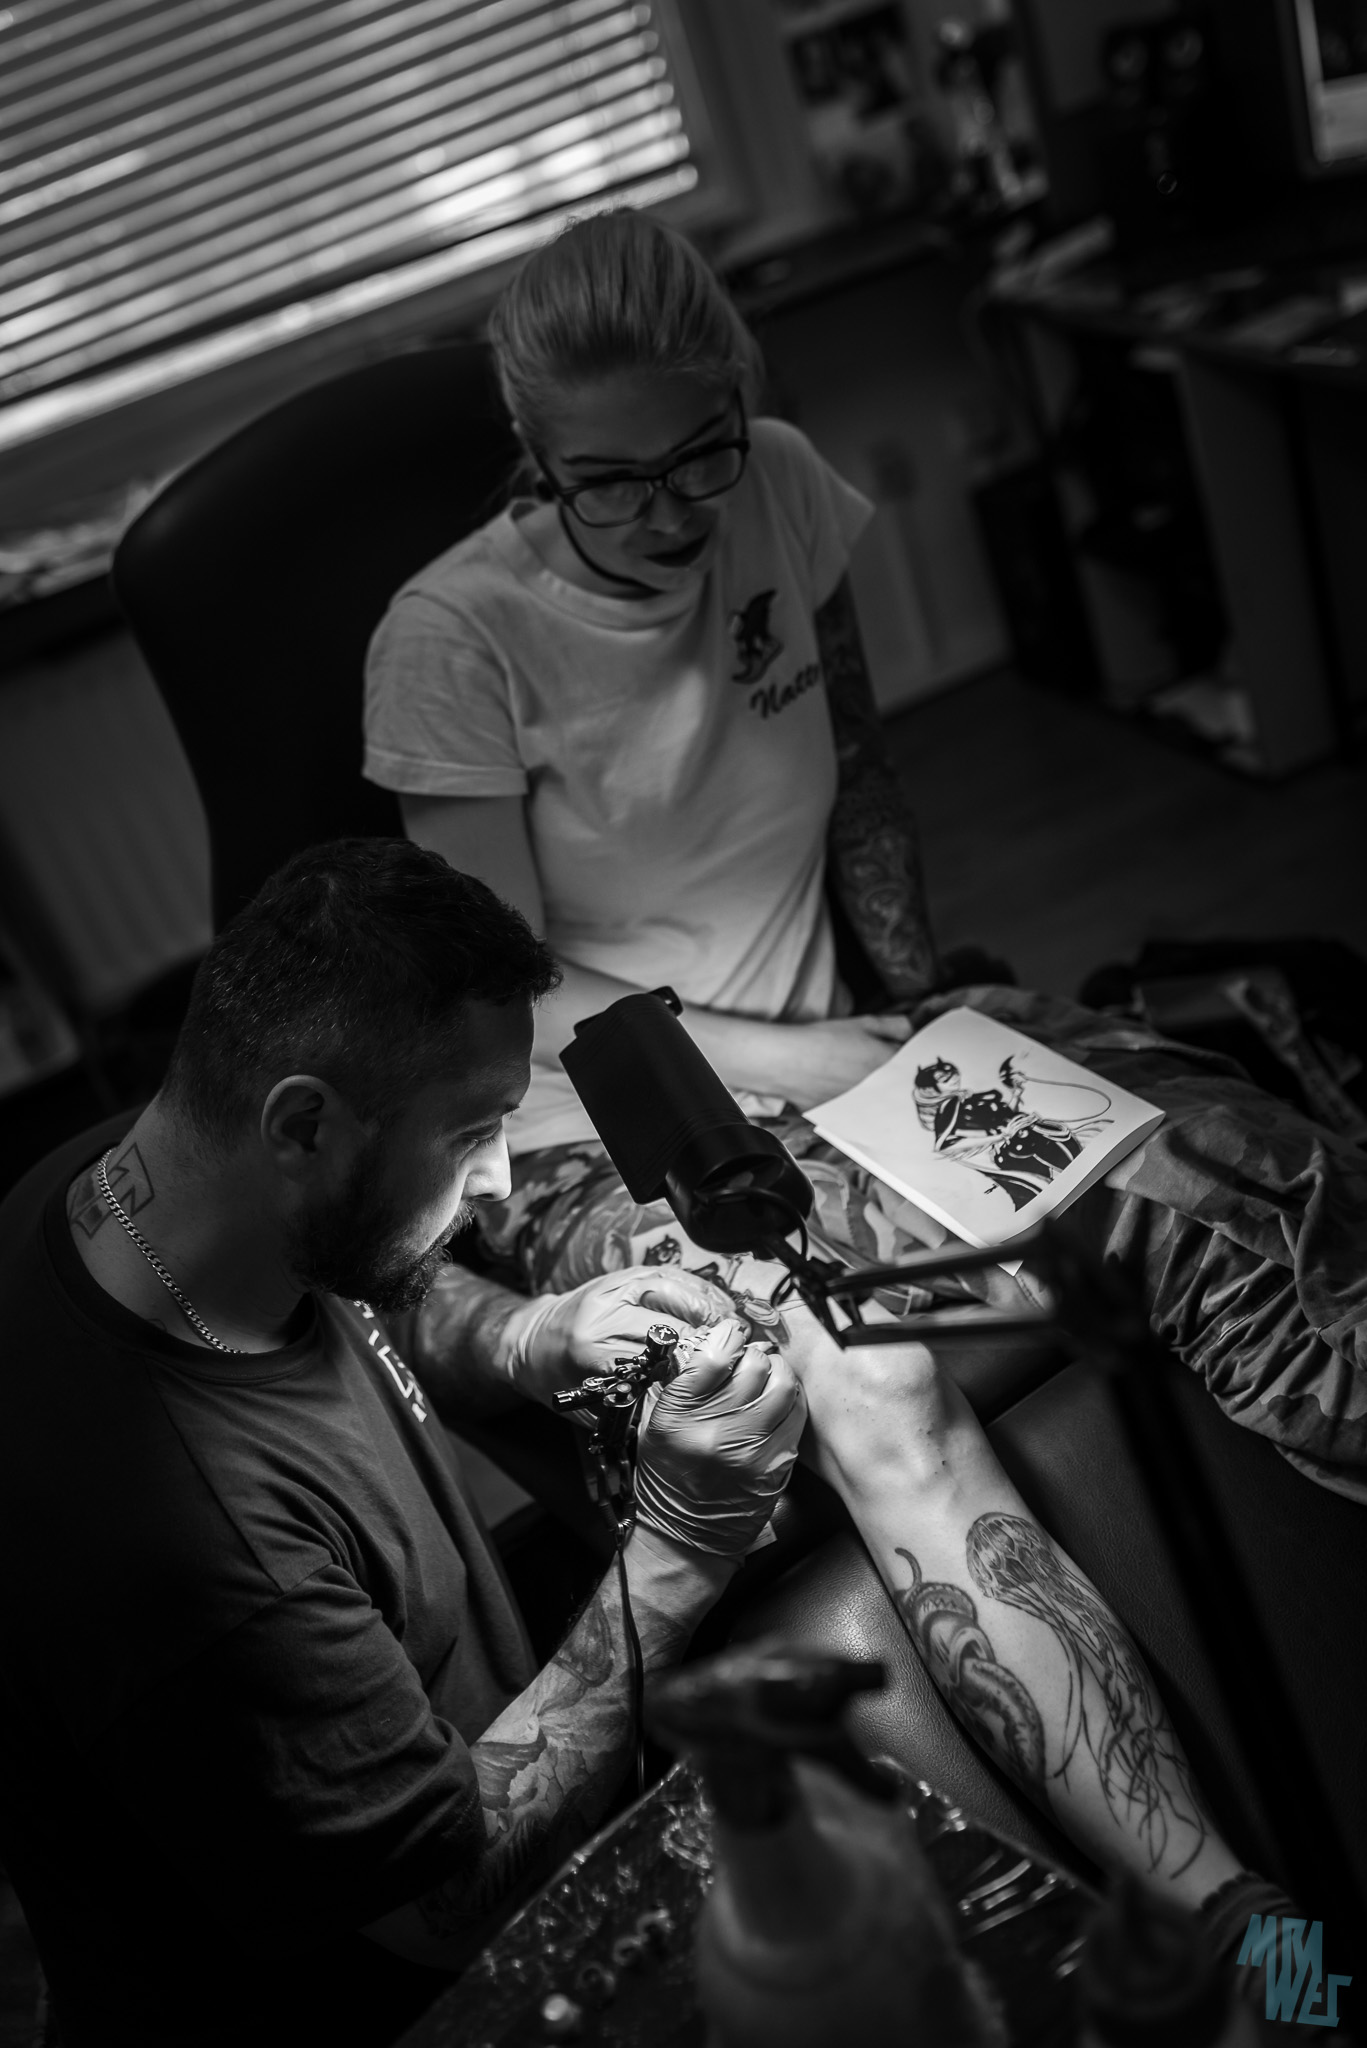 Nat_tattoo_Tešlo__057__web